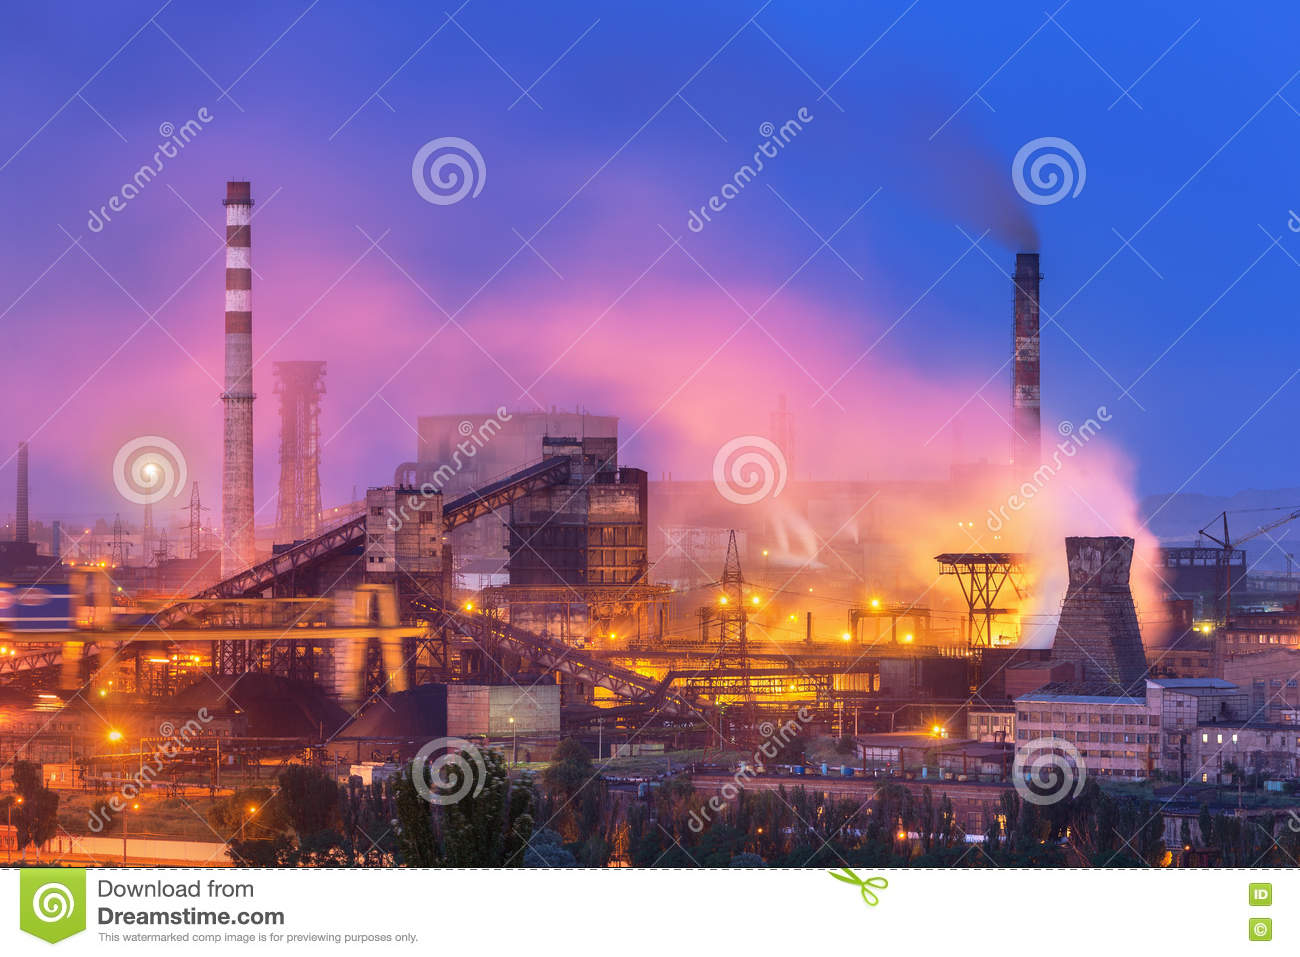 Metallurgical plant with white smoke at night. Steel factory with smokestacks . Steelworks, iron works. Heavy industry